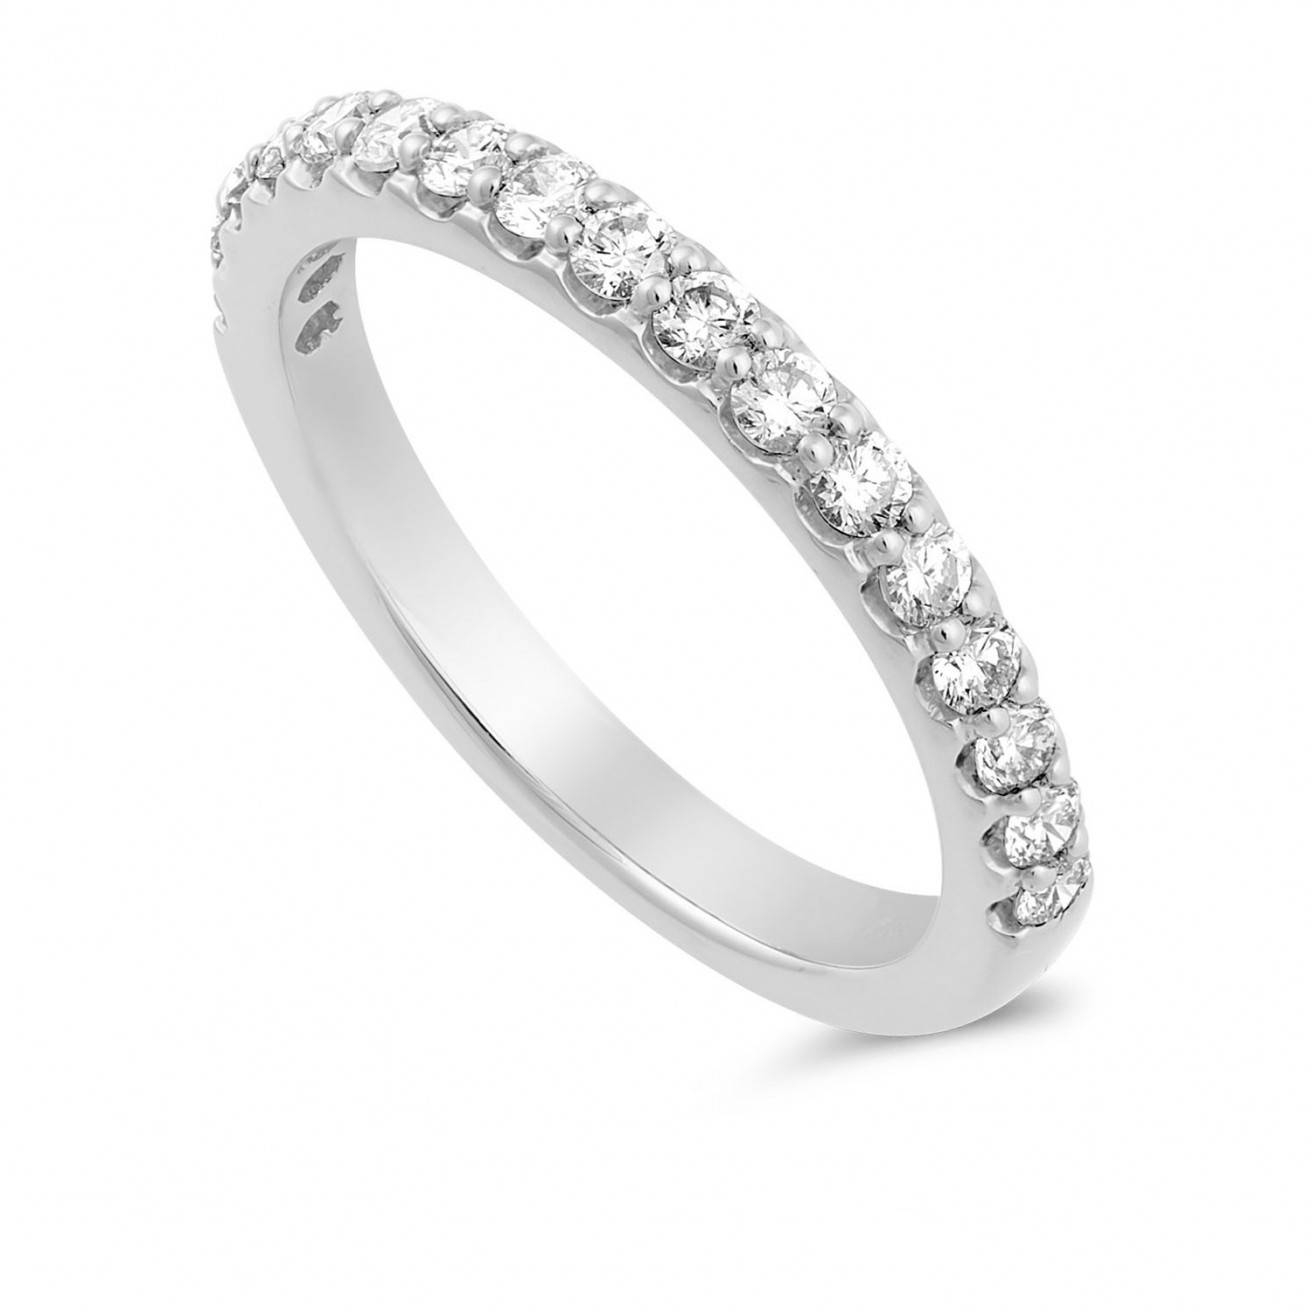 Buy Platinum Wedding Bands Online – Fraser Hart With Regard To Diamond Platinum Wedding Rings (View 8 of 15)